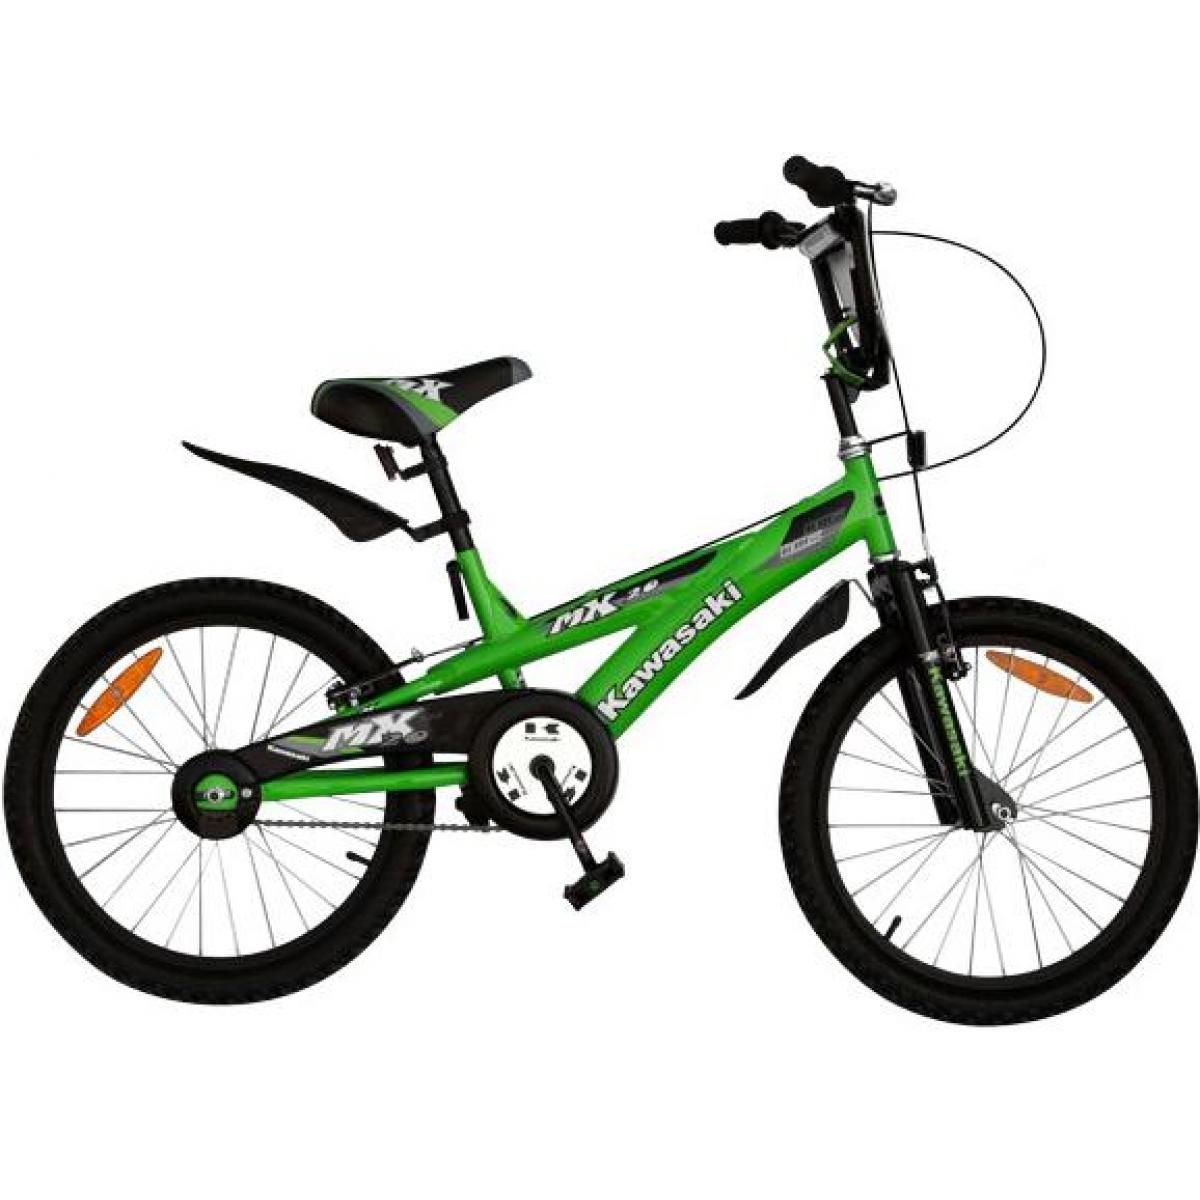 kinder fahrrad kawasaki dirt 16 zoll mx 16 kinderfahrrad bmx b ware ebay. Black Bedroom Furniture Sets. Home Design Ideas